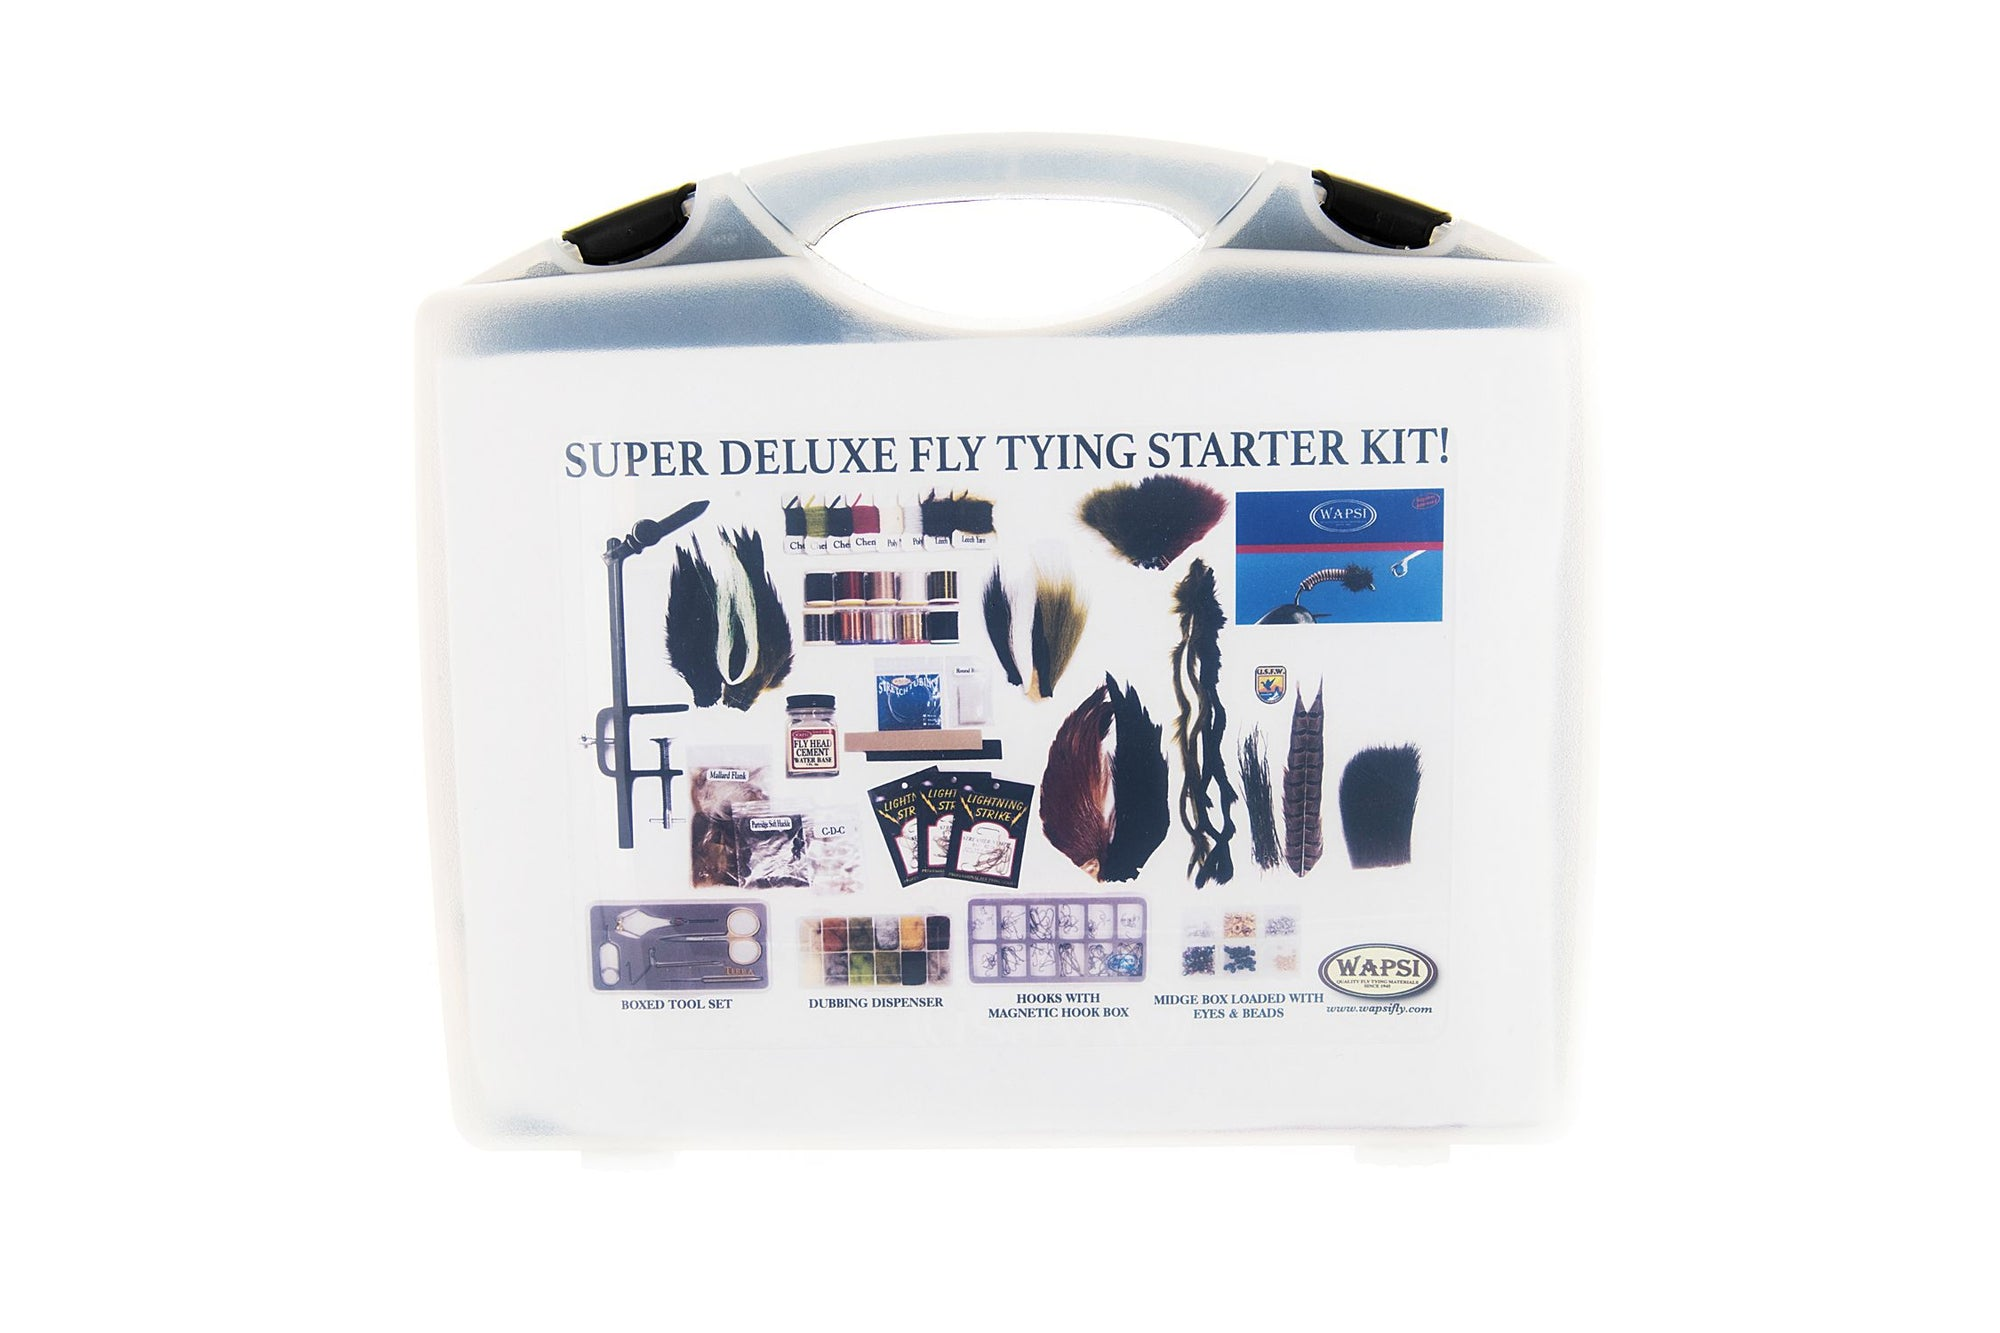 Wapsi Super Deluxe Fly Tying Kit